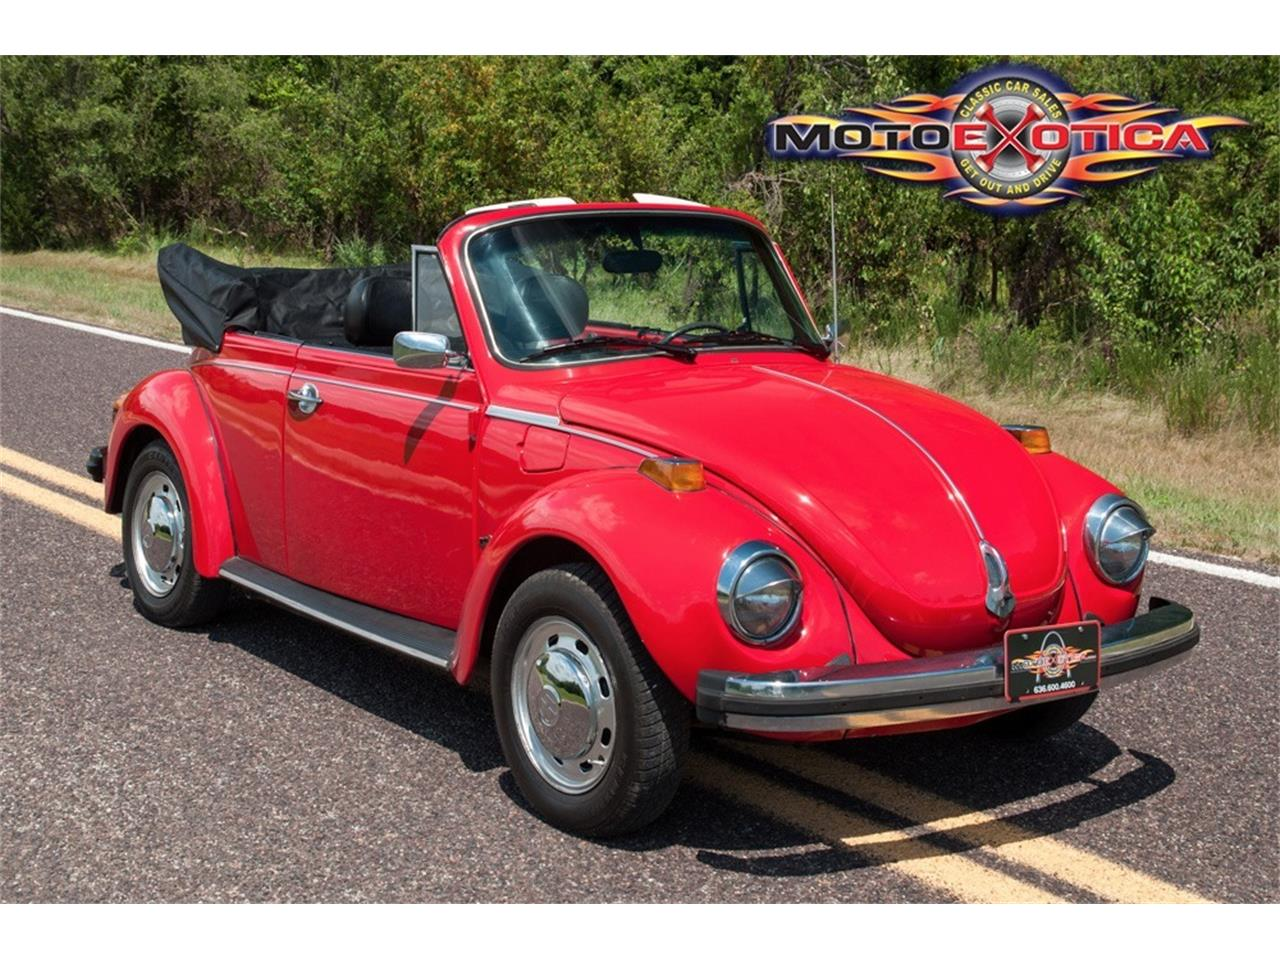 Large Picture of 1978 Super Beetle located in St. Louis Missouri - $17,900.00 - LG5A